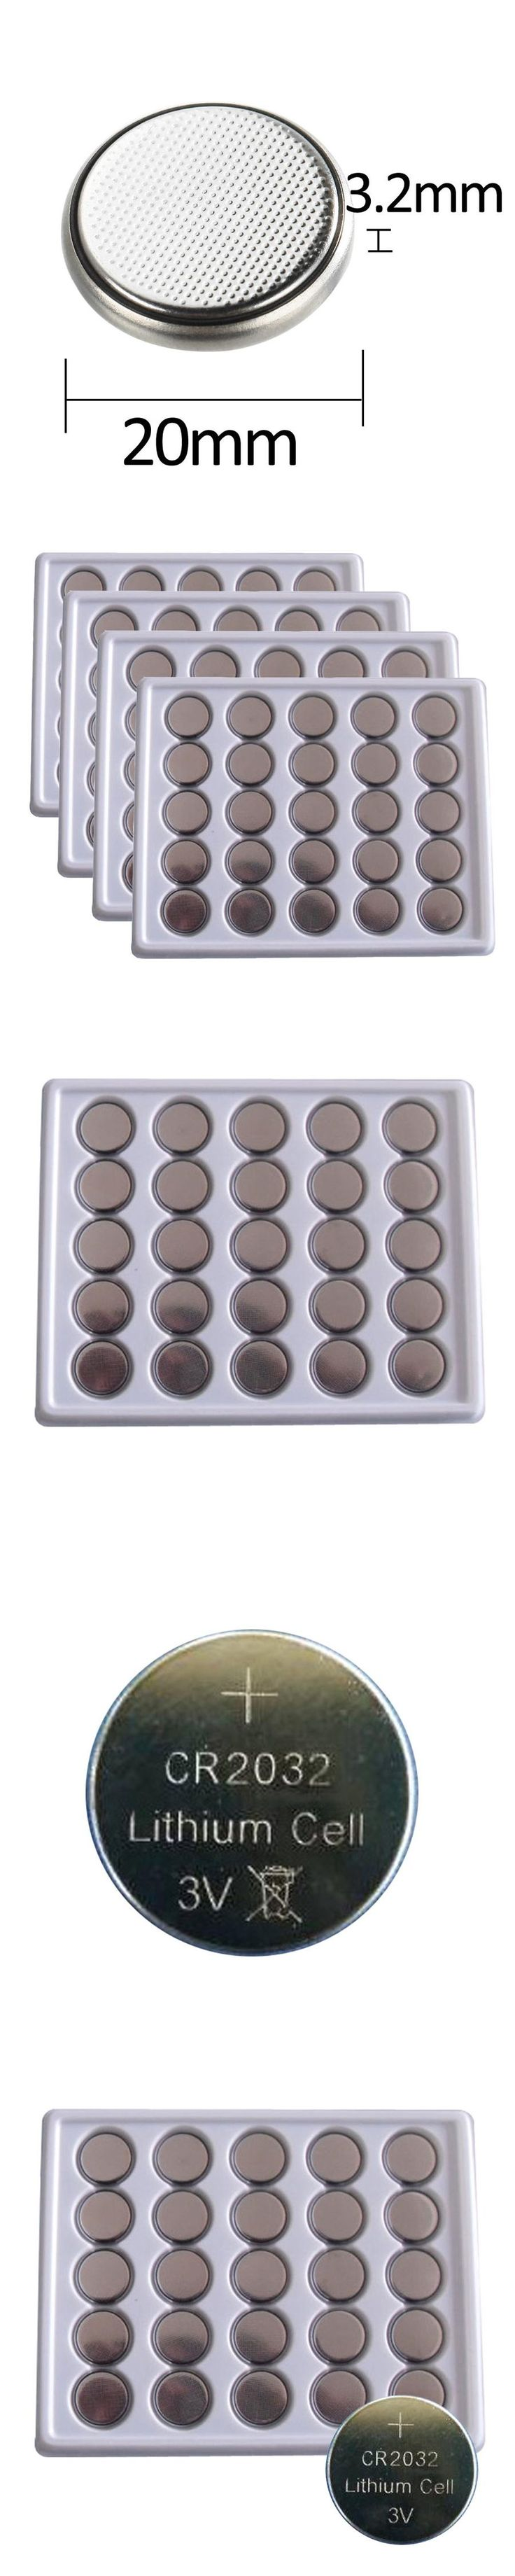 50Pcs CR2032 3V Cell Button Lithium Battery DL2032 BR2032 ECR2032 CR2032 button cell Type Currency Batteries For Watches watches